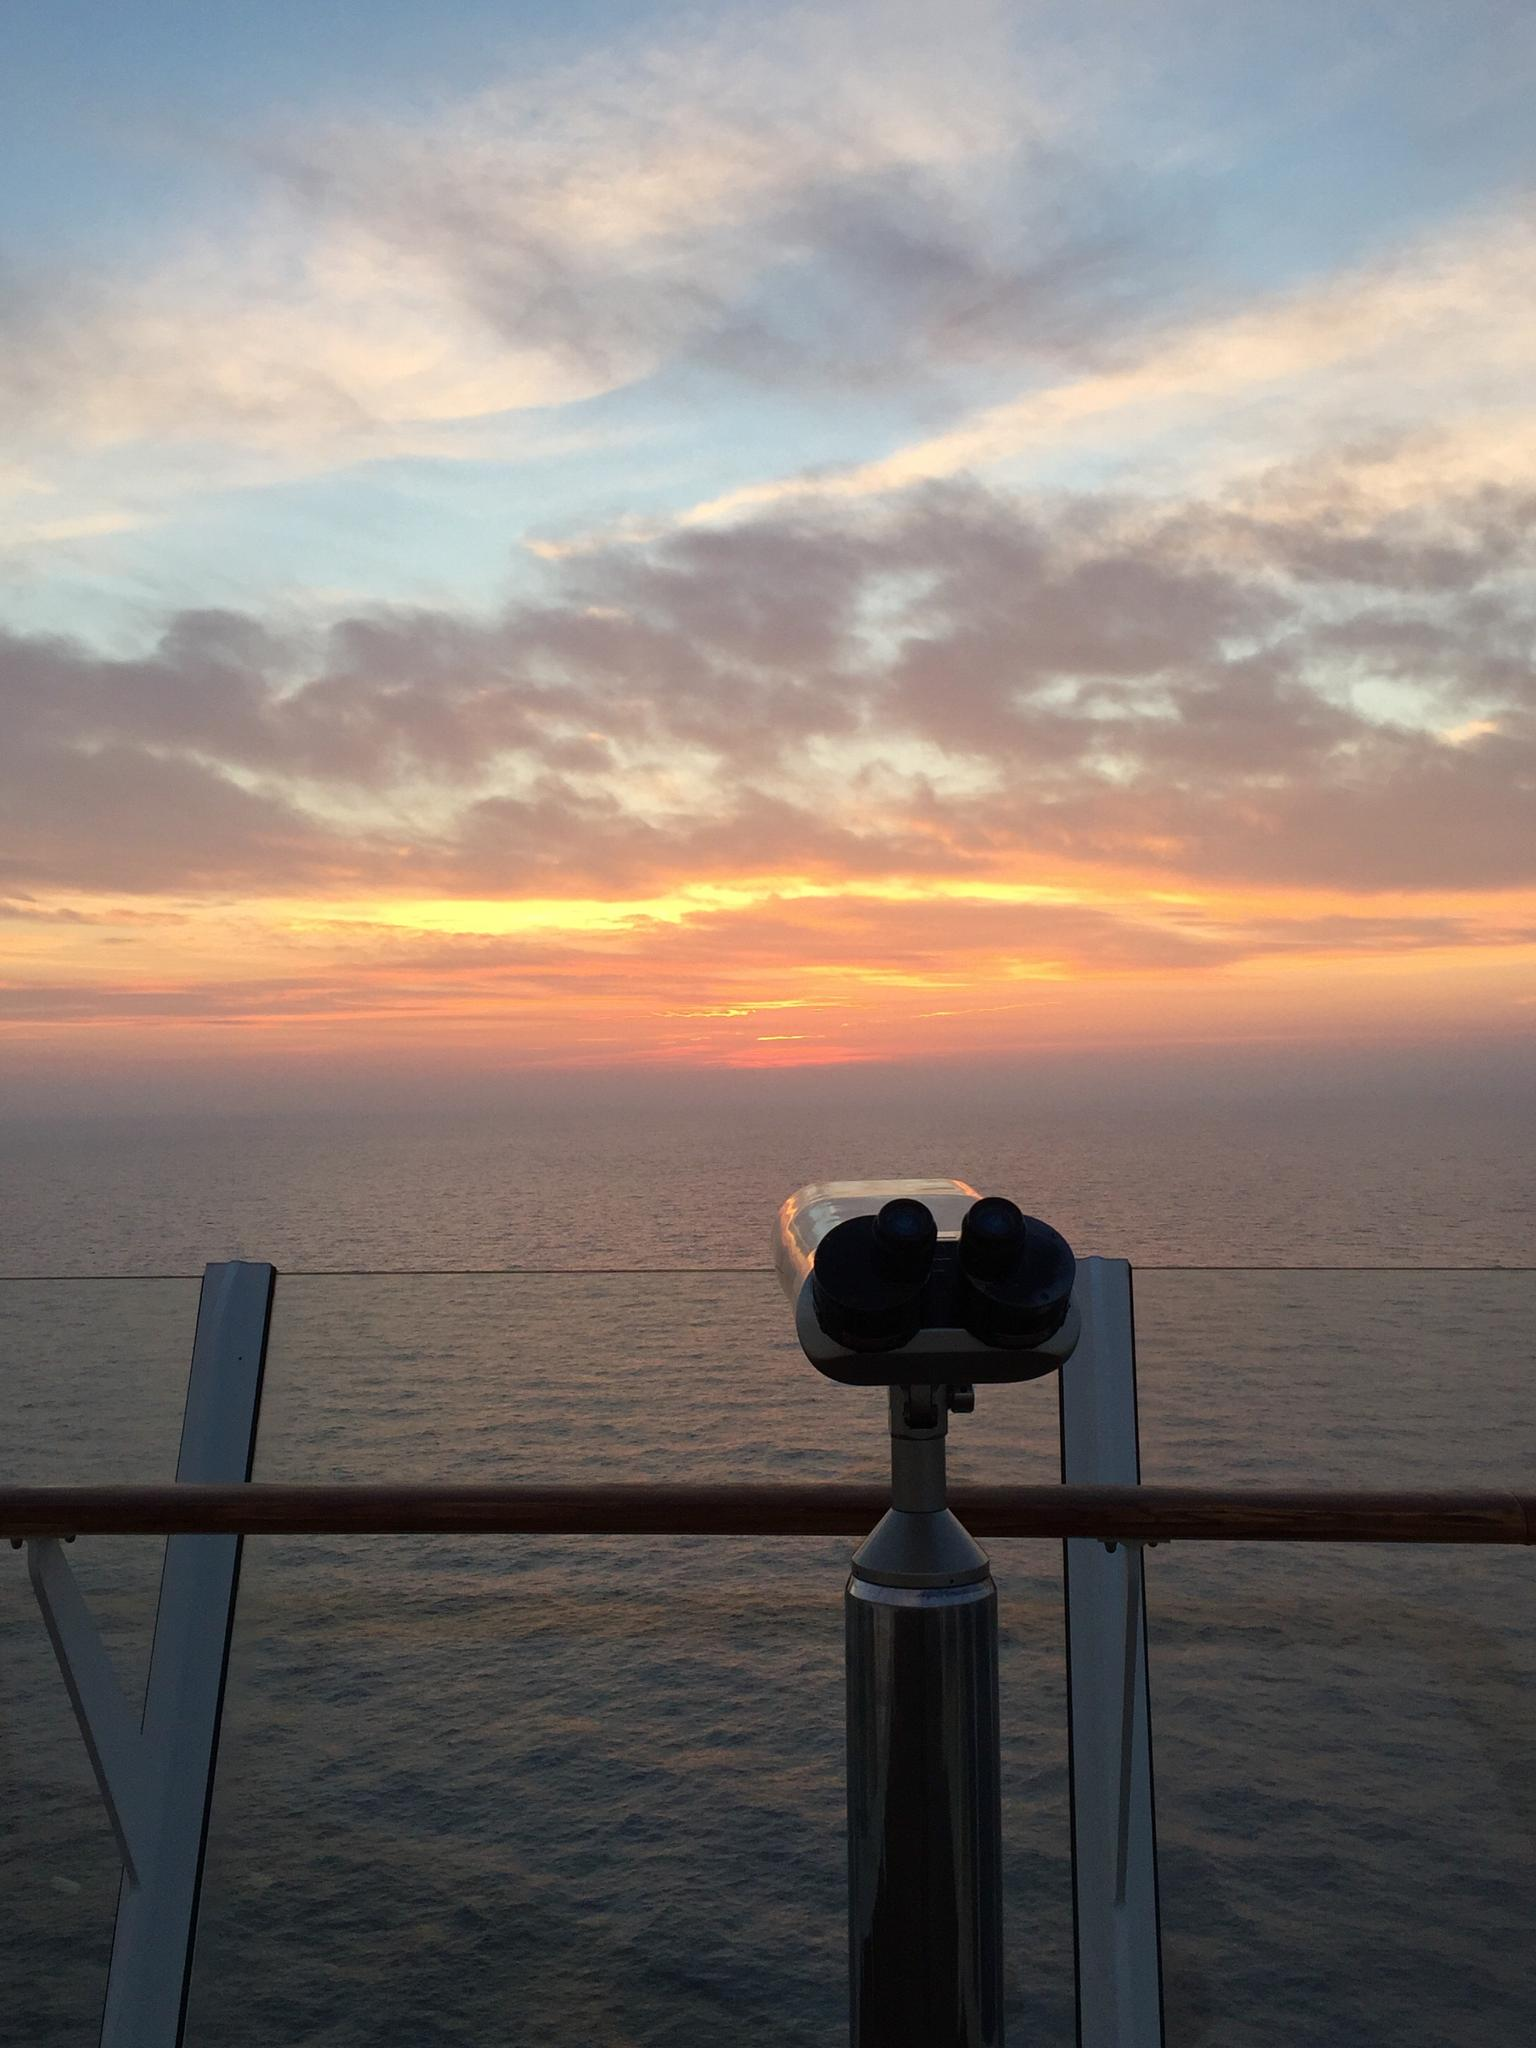 Sunset view from Allure of the Seas by Jason R. Rich